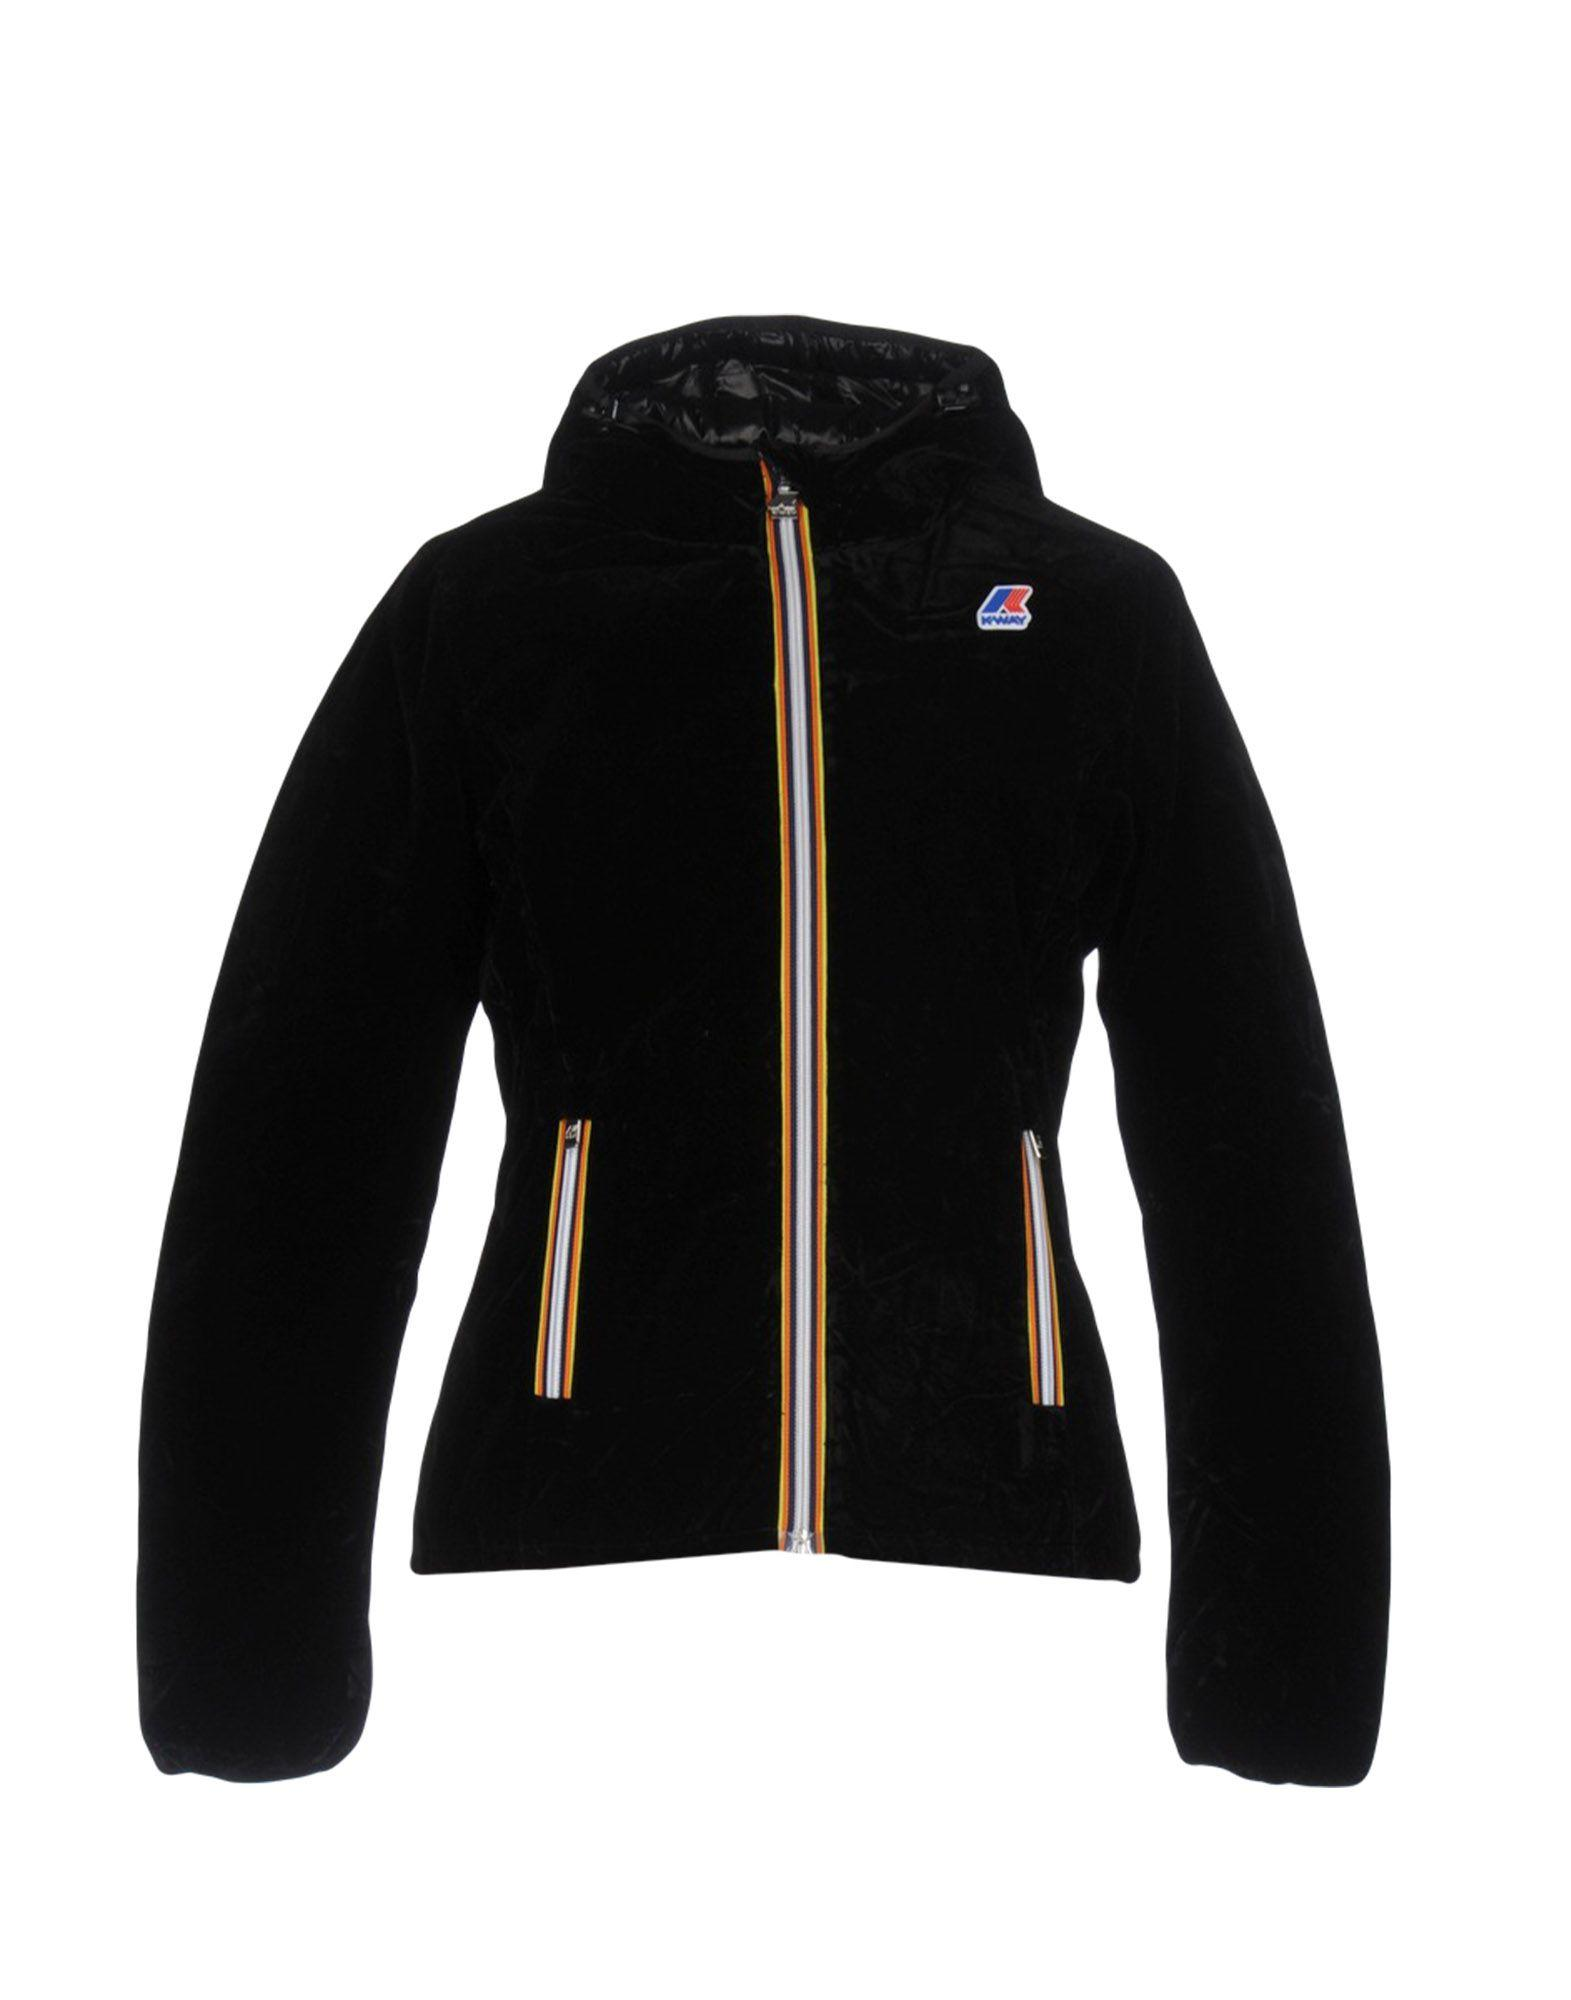 K-way Down Jacket In Black